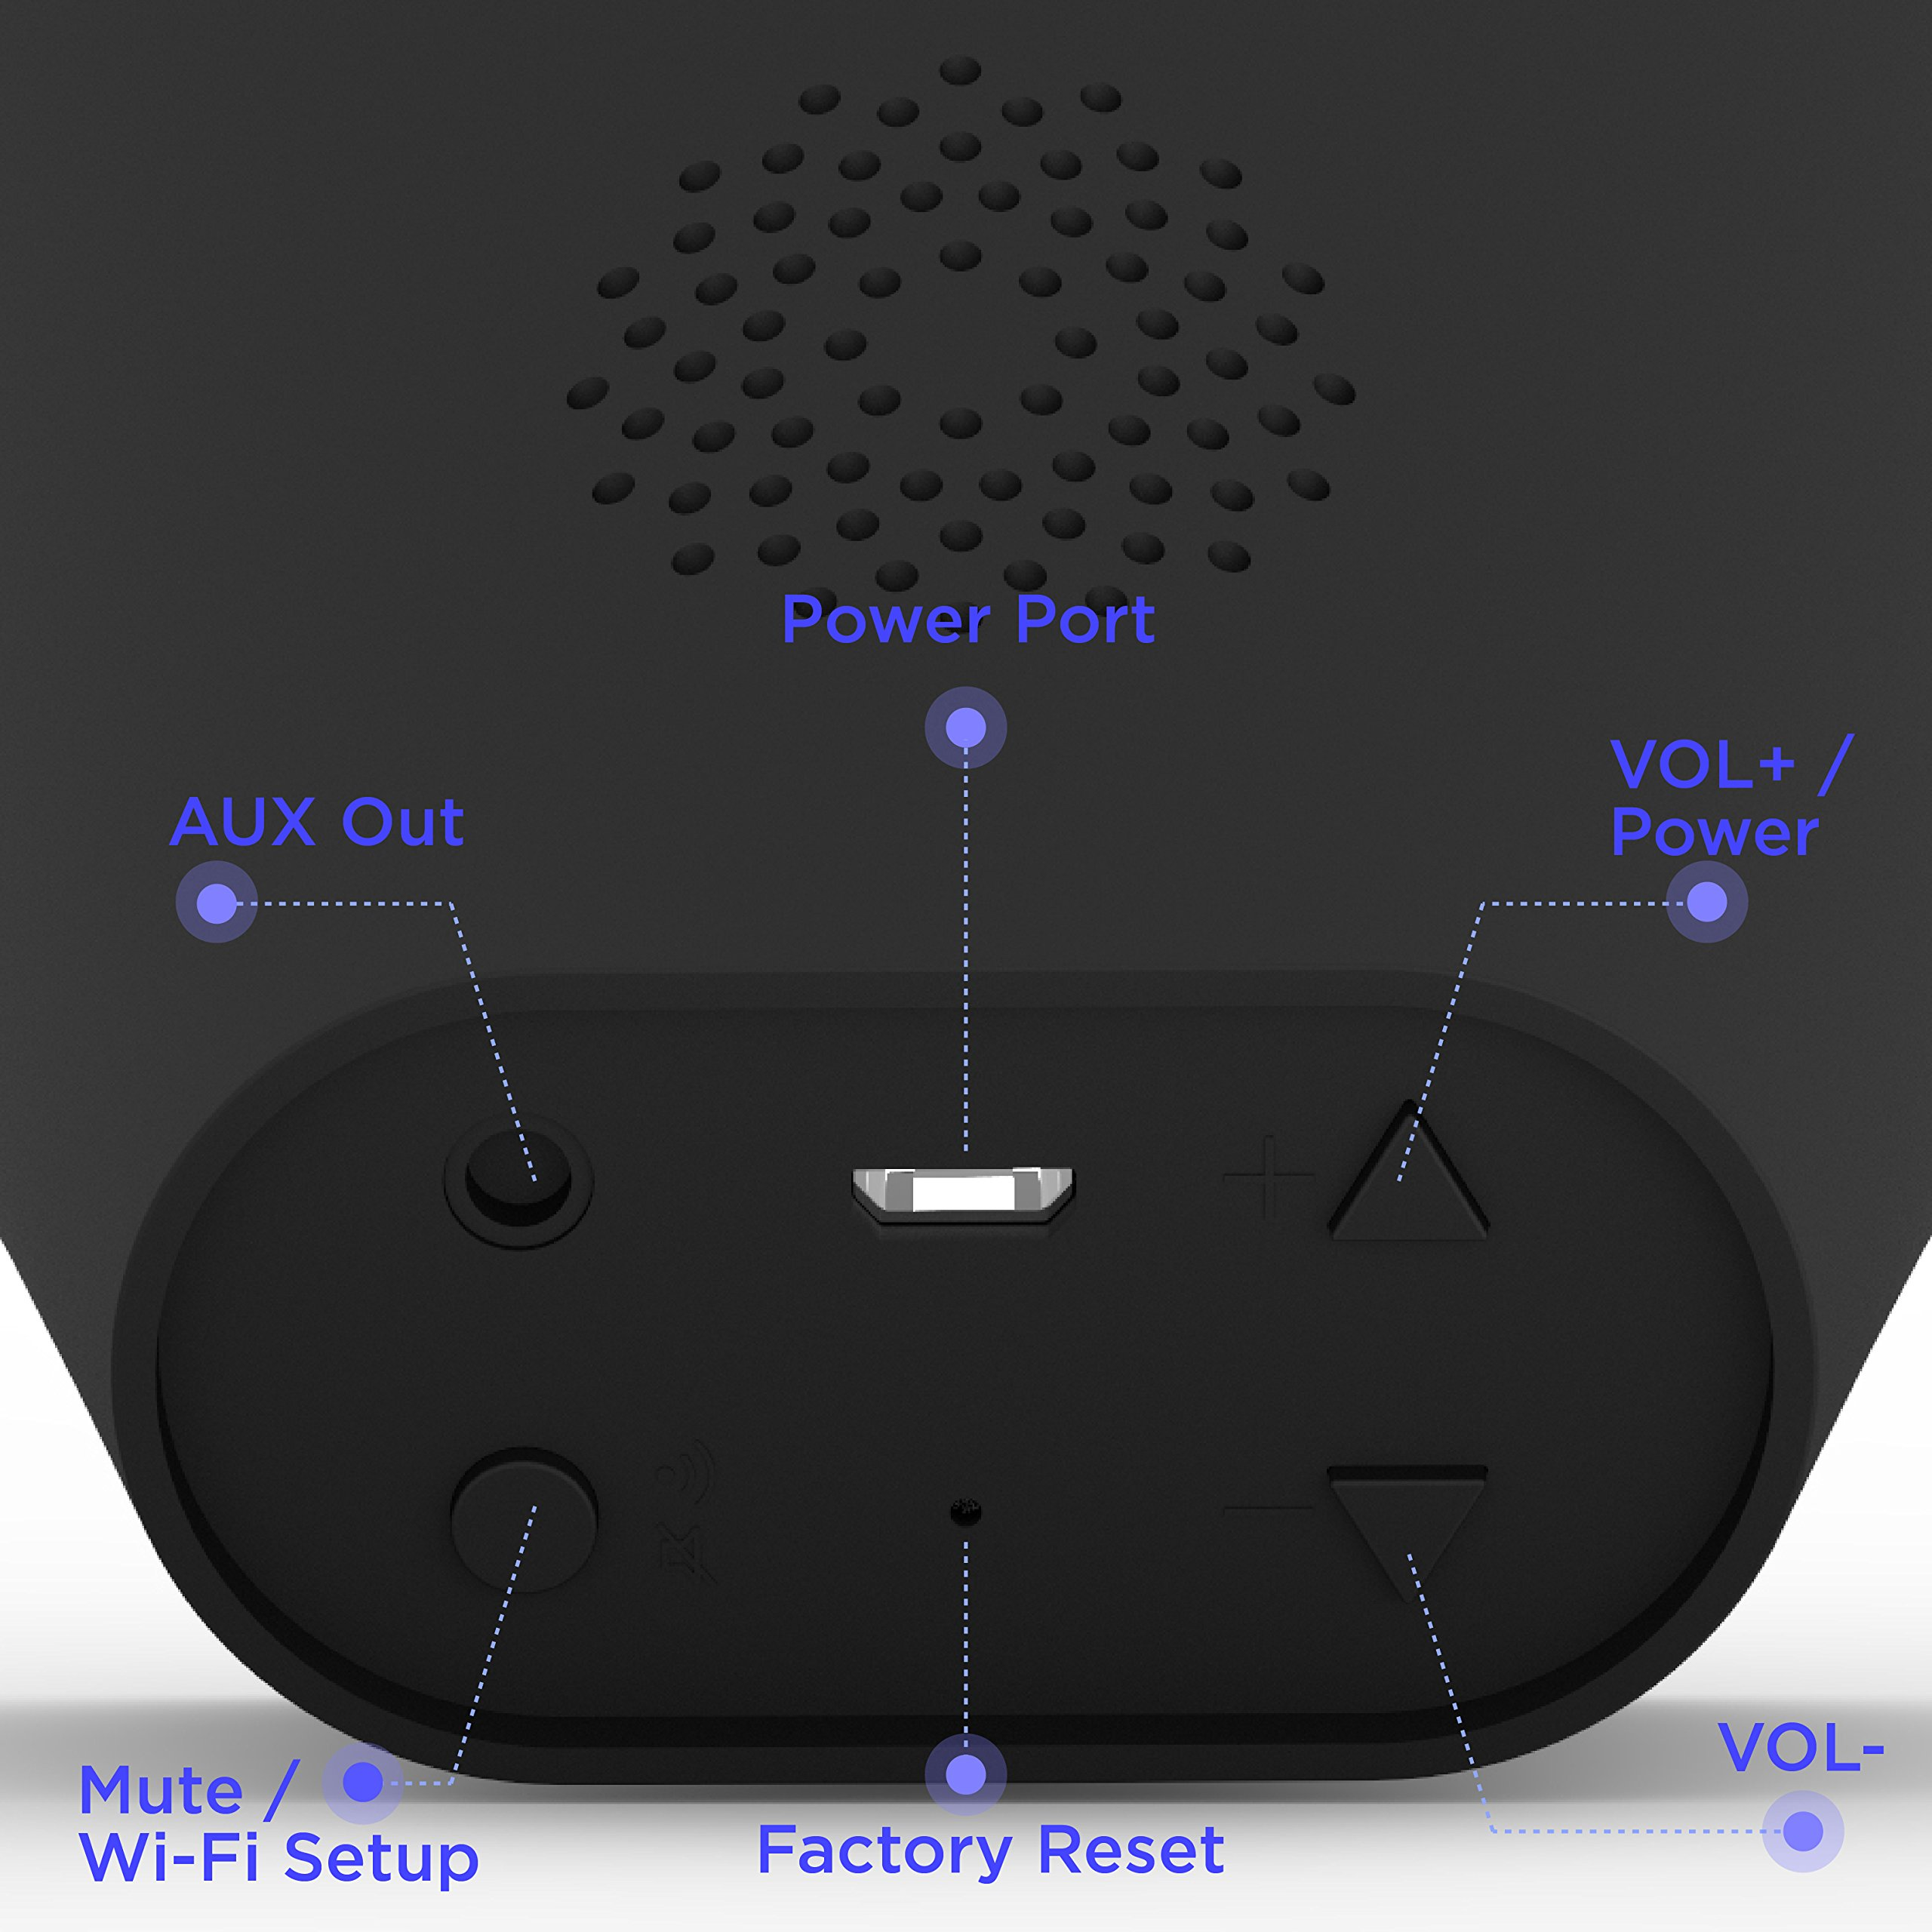 Vobot Smart Alarm Clock with Amazon Alexa[Touch-Initiate], 5W Speaker, LED Display, White Noise Machine, Timer/Date/Weather/Daily News/Radio/Music(Amazon Music, iHeartRadio, TuneIn etc) by VOBOT (Image #8)